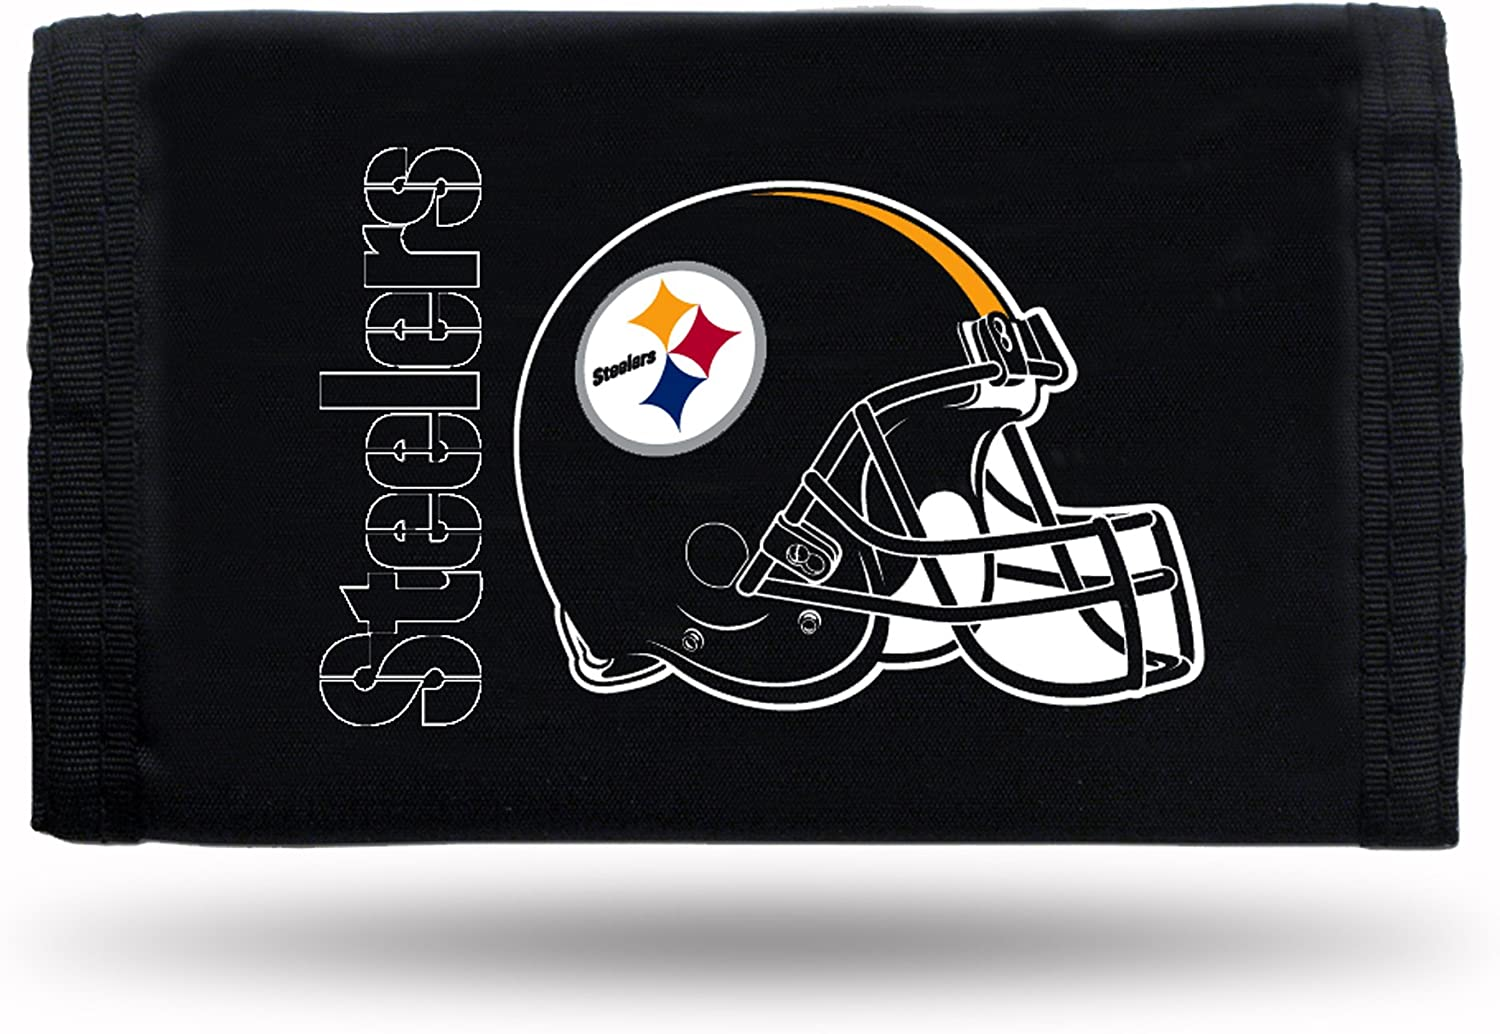 B0002DFLGS Pittsburgh Steelers Black Nylon Tri-Fold Wallet 81yOhciaRNL